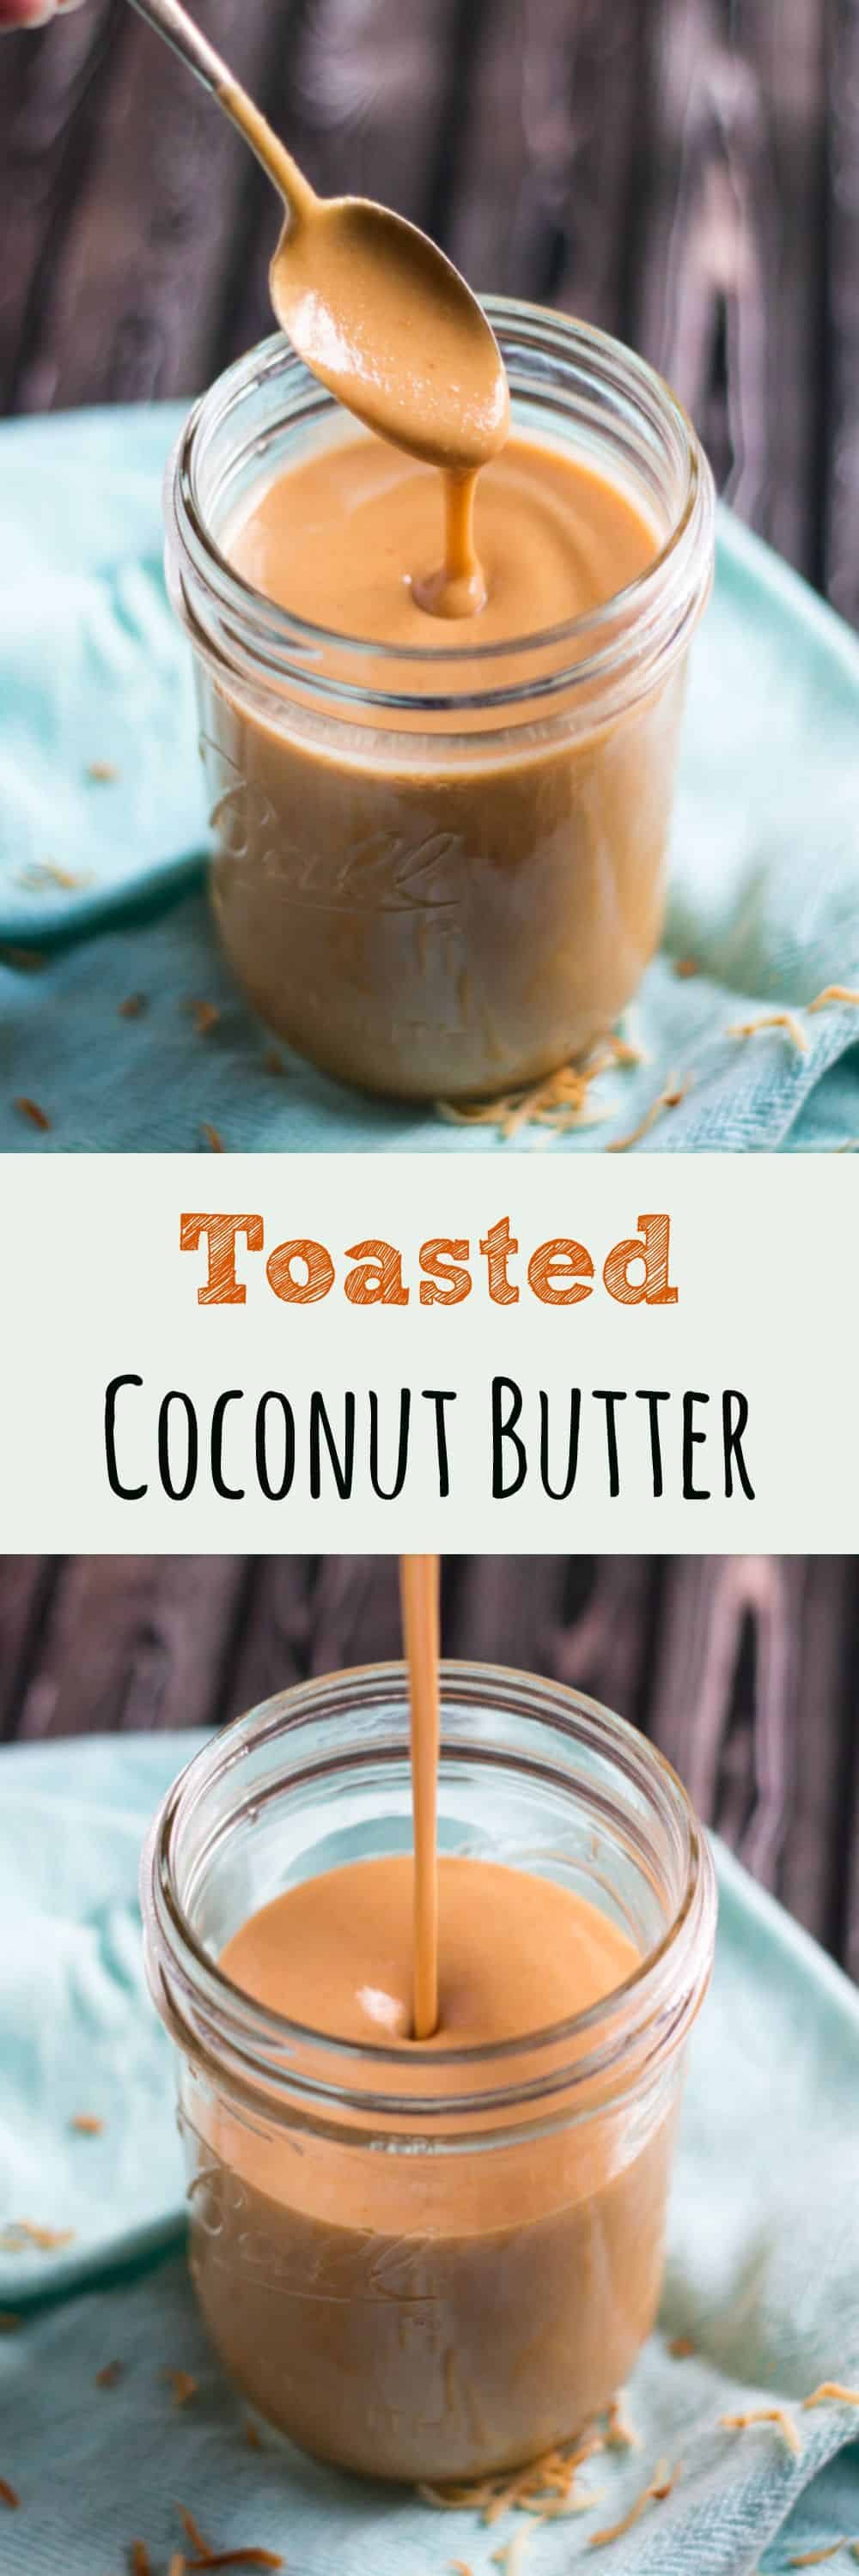 Just when you thought there was nothing better than coconut butter, introducing Toasted Coconut Butter. Use anywhere you would original coconut butter.